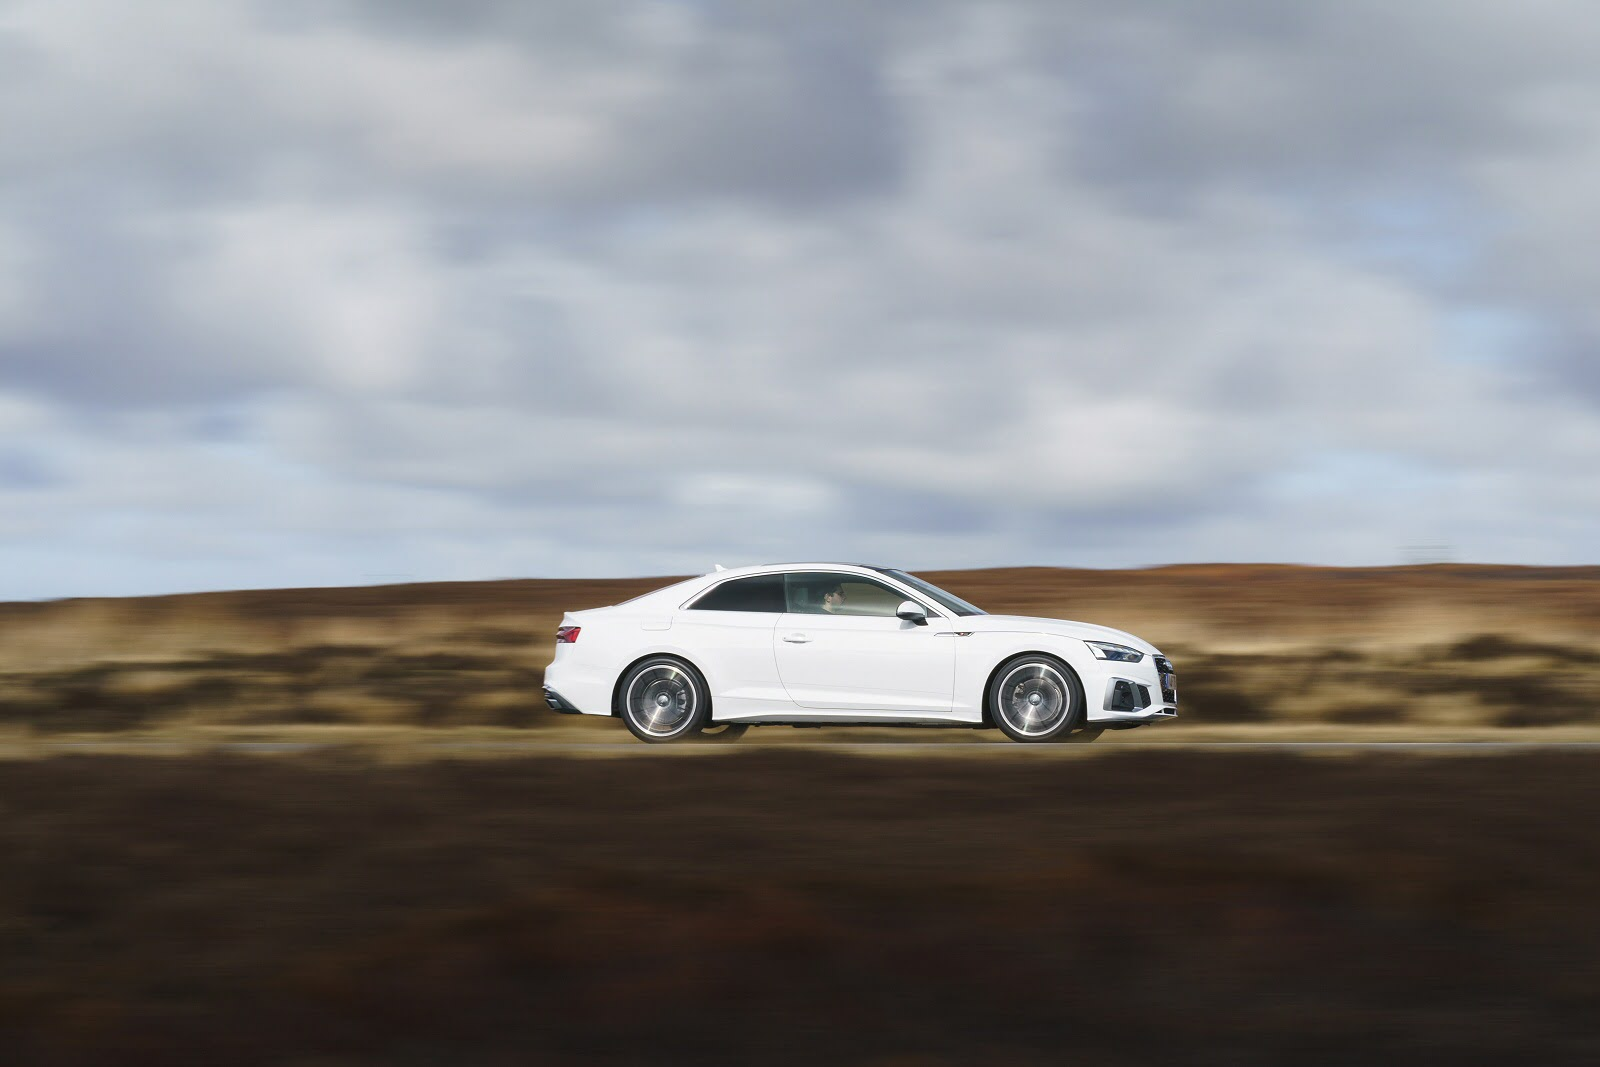 a5_coupe_98326.jpg - 40 TFSI 204 Sport 2dr S Tronic